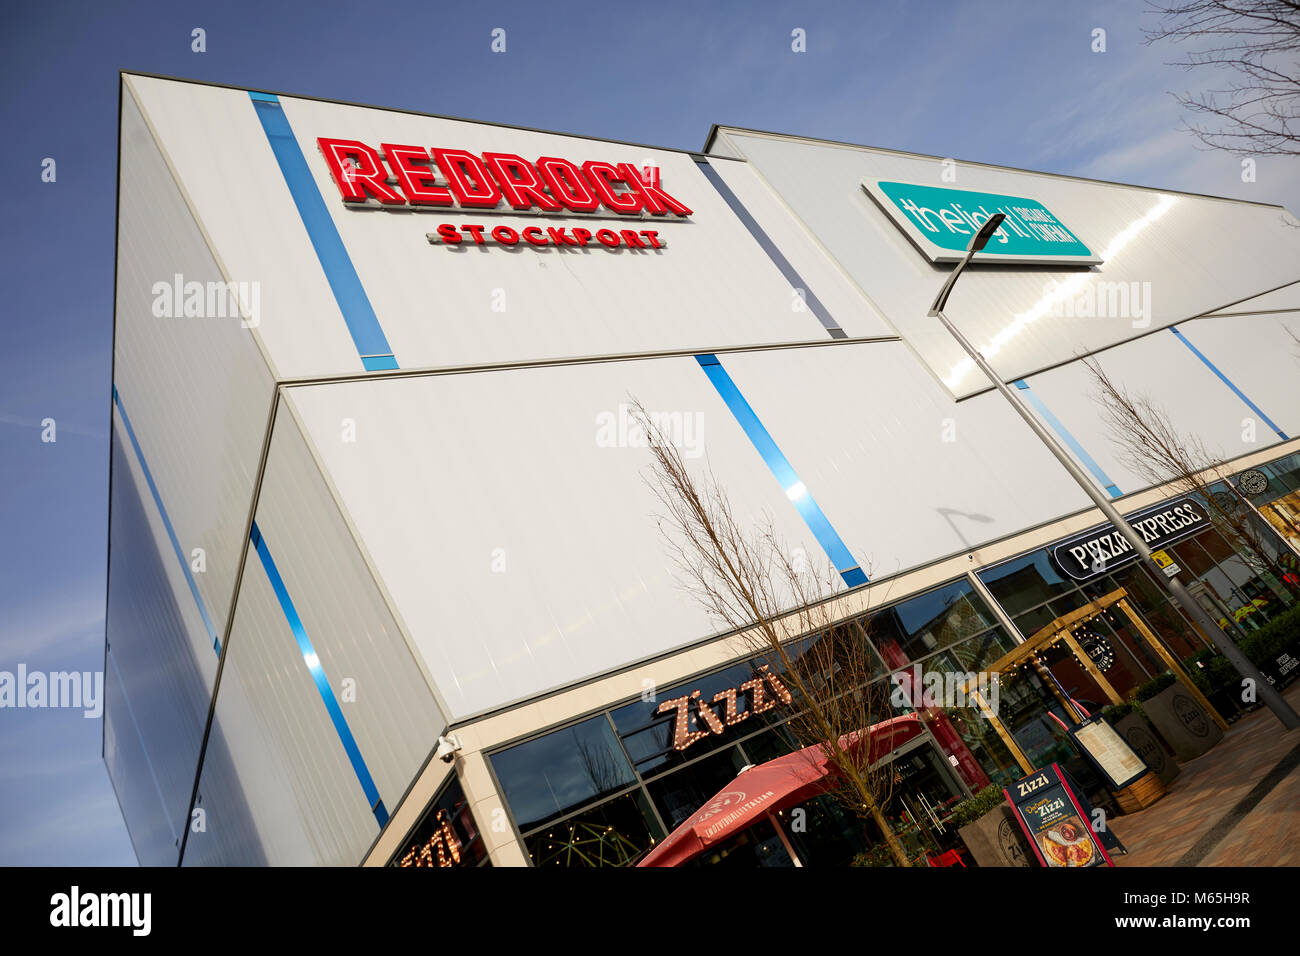 Redrock building featuring restaurants and a cinema it is part of a redevelopment that in Stockport - Stock Image